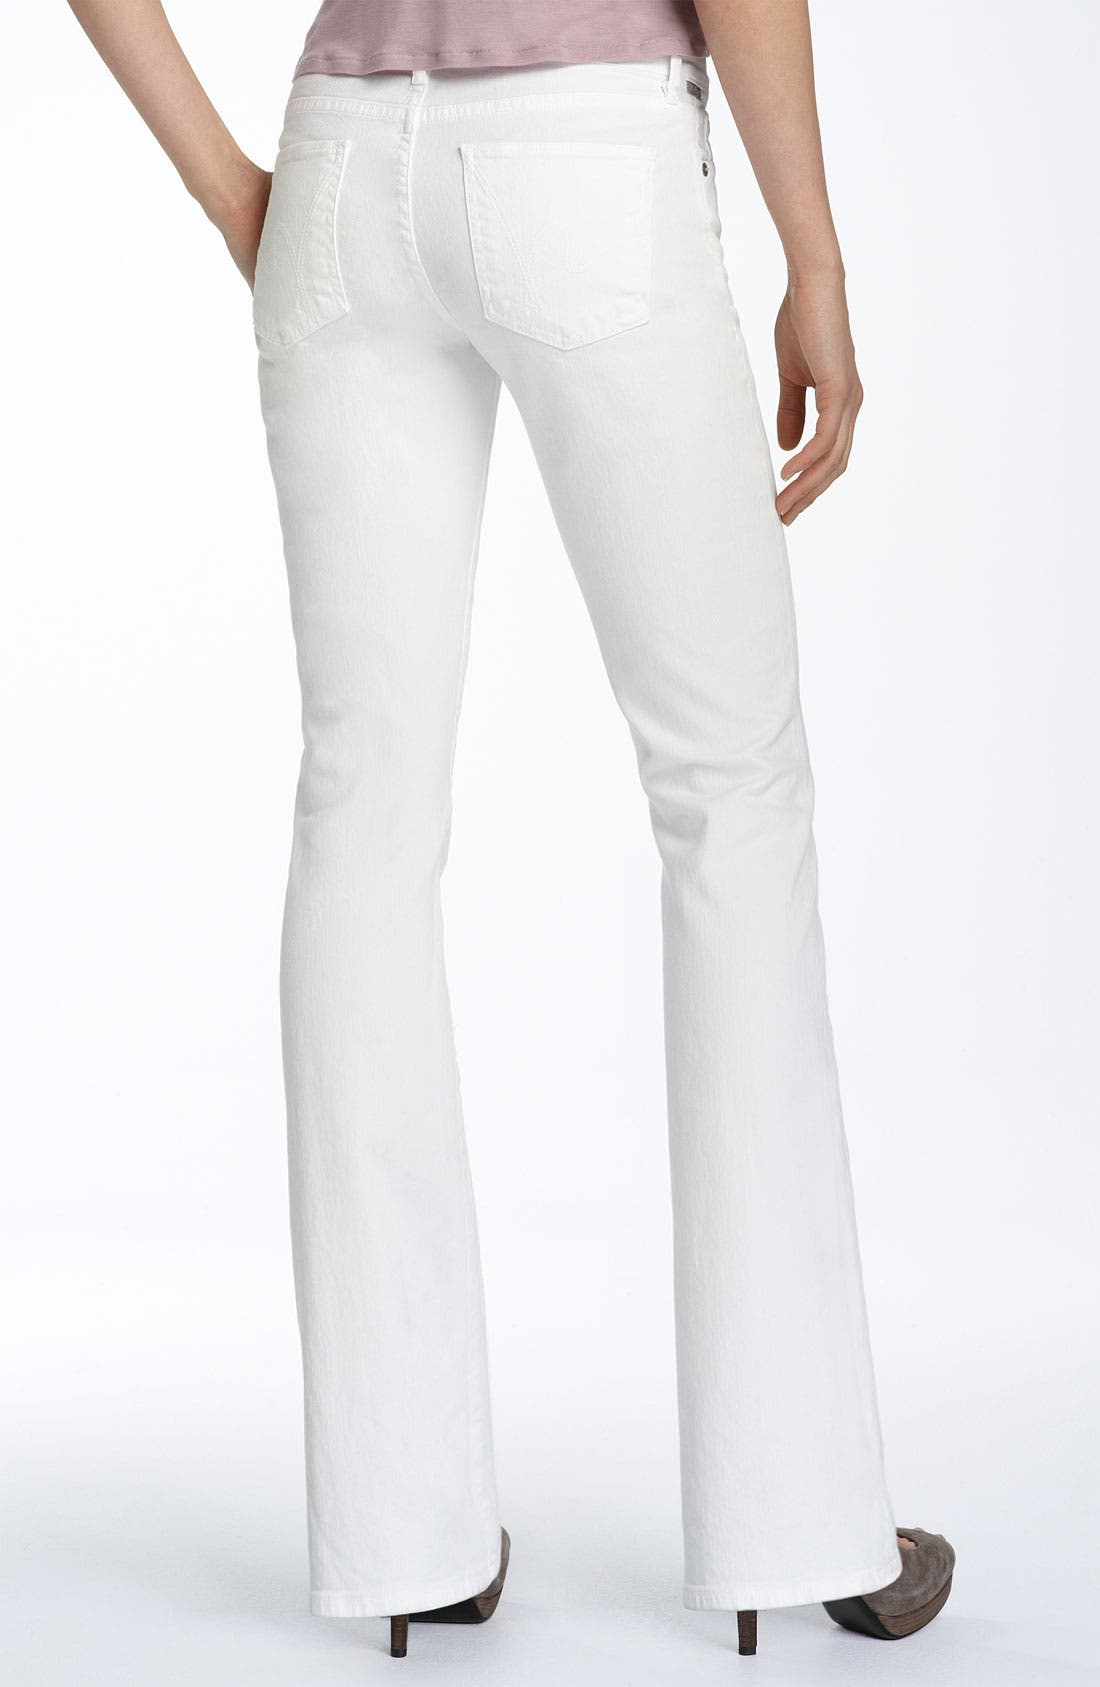 CITIZENS OF HUMANITY, 'Amber' Mid Rise Bootcut Stretch Jeans, Main thumbnail 1, color, 100